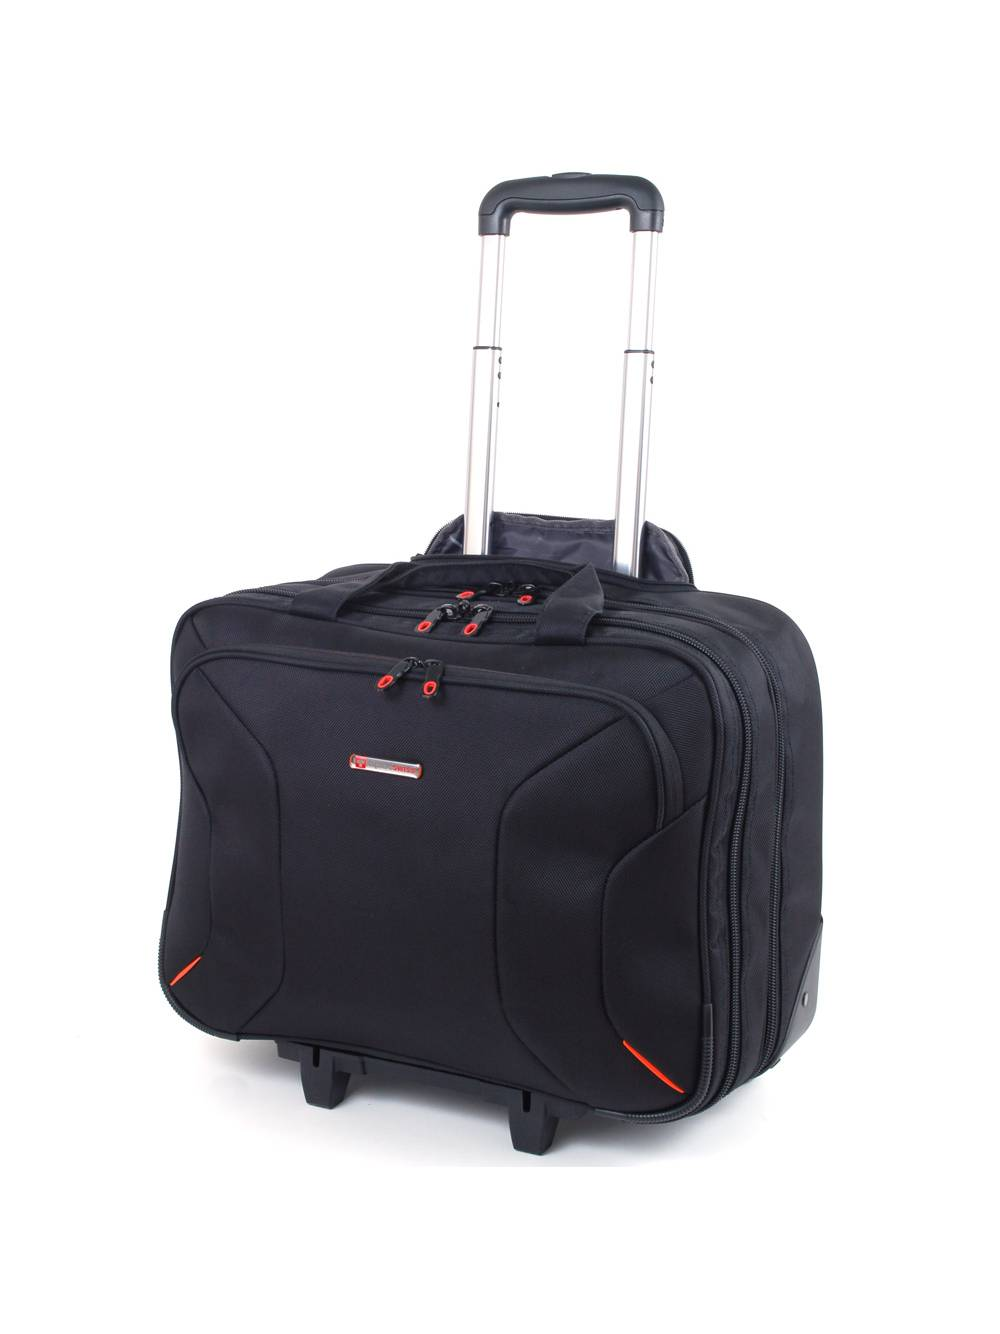 "Alpine Swiss Rolling Briefcase on Wheels Roller 17"" Laptop Case W Tablet Sleeve by Alpine Swiss"